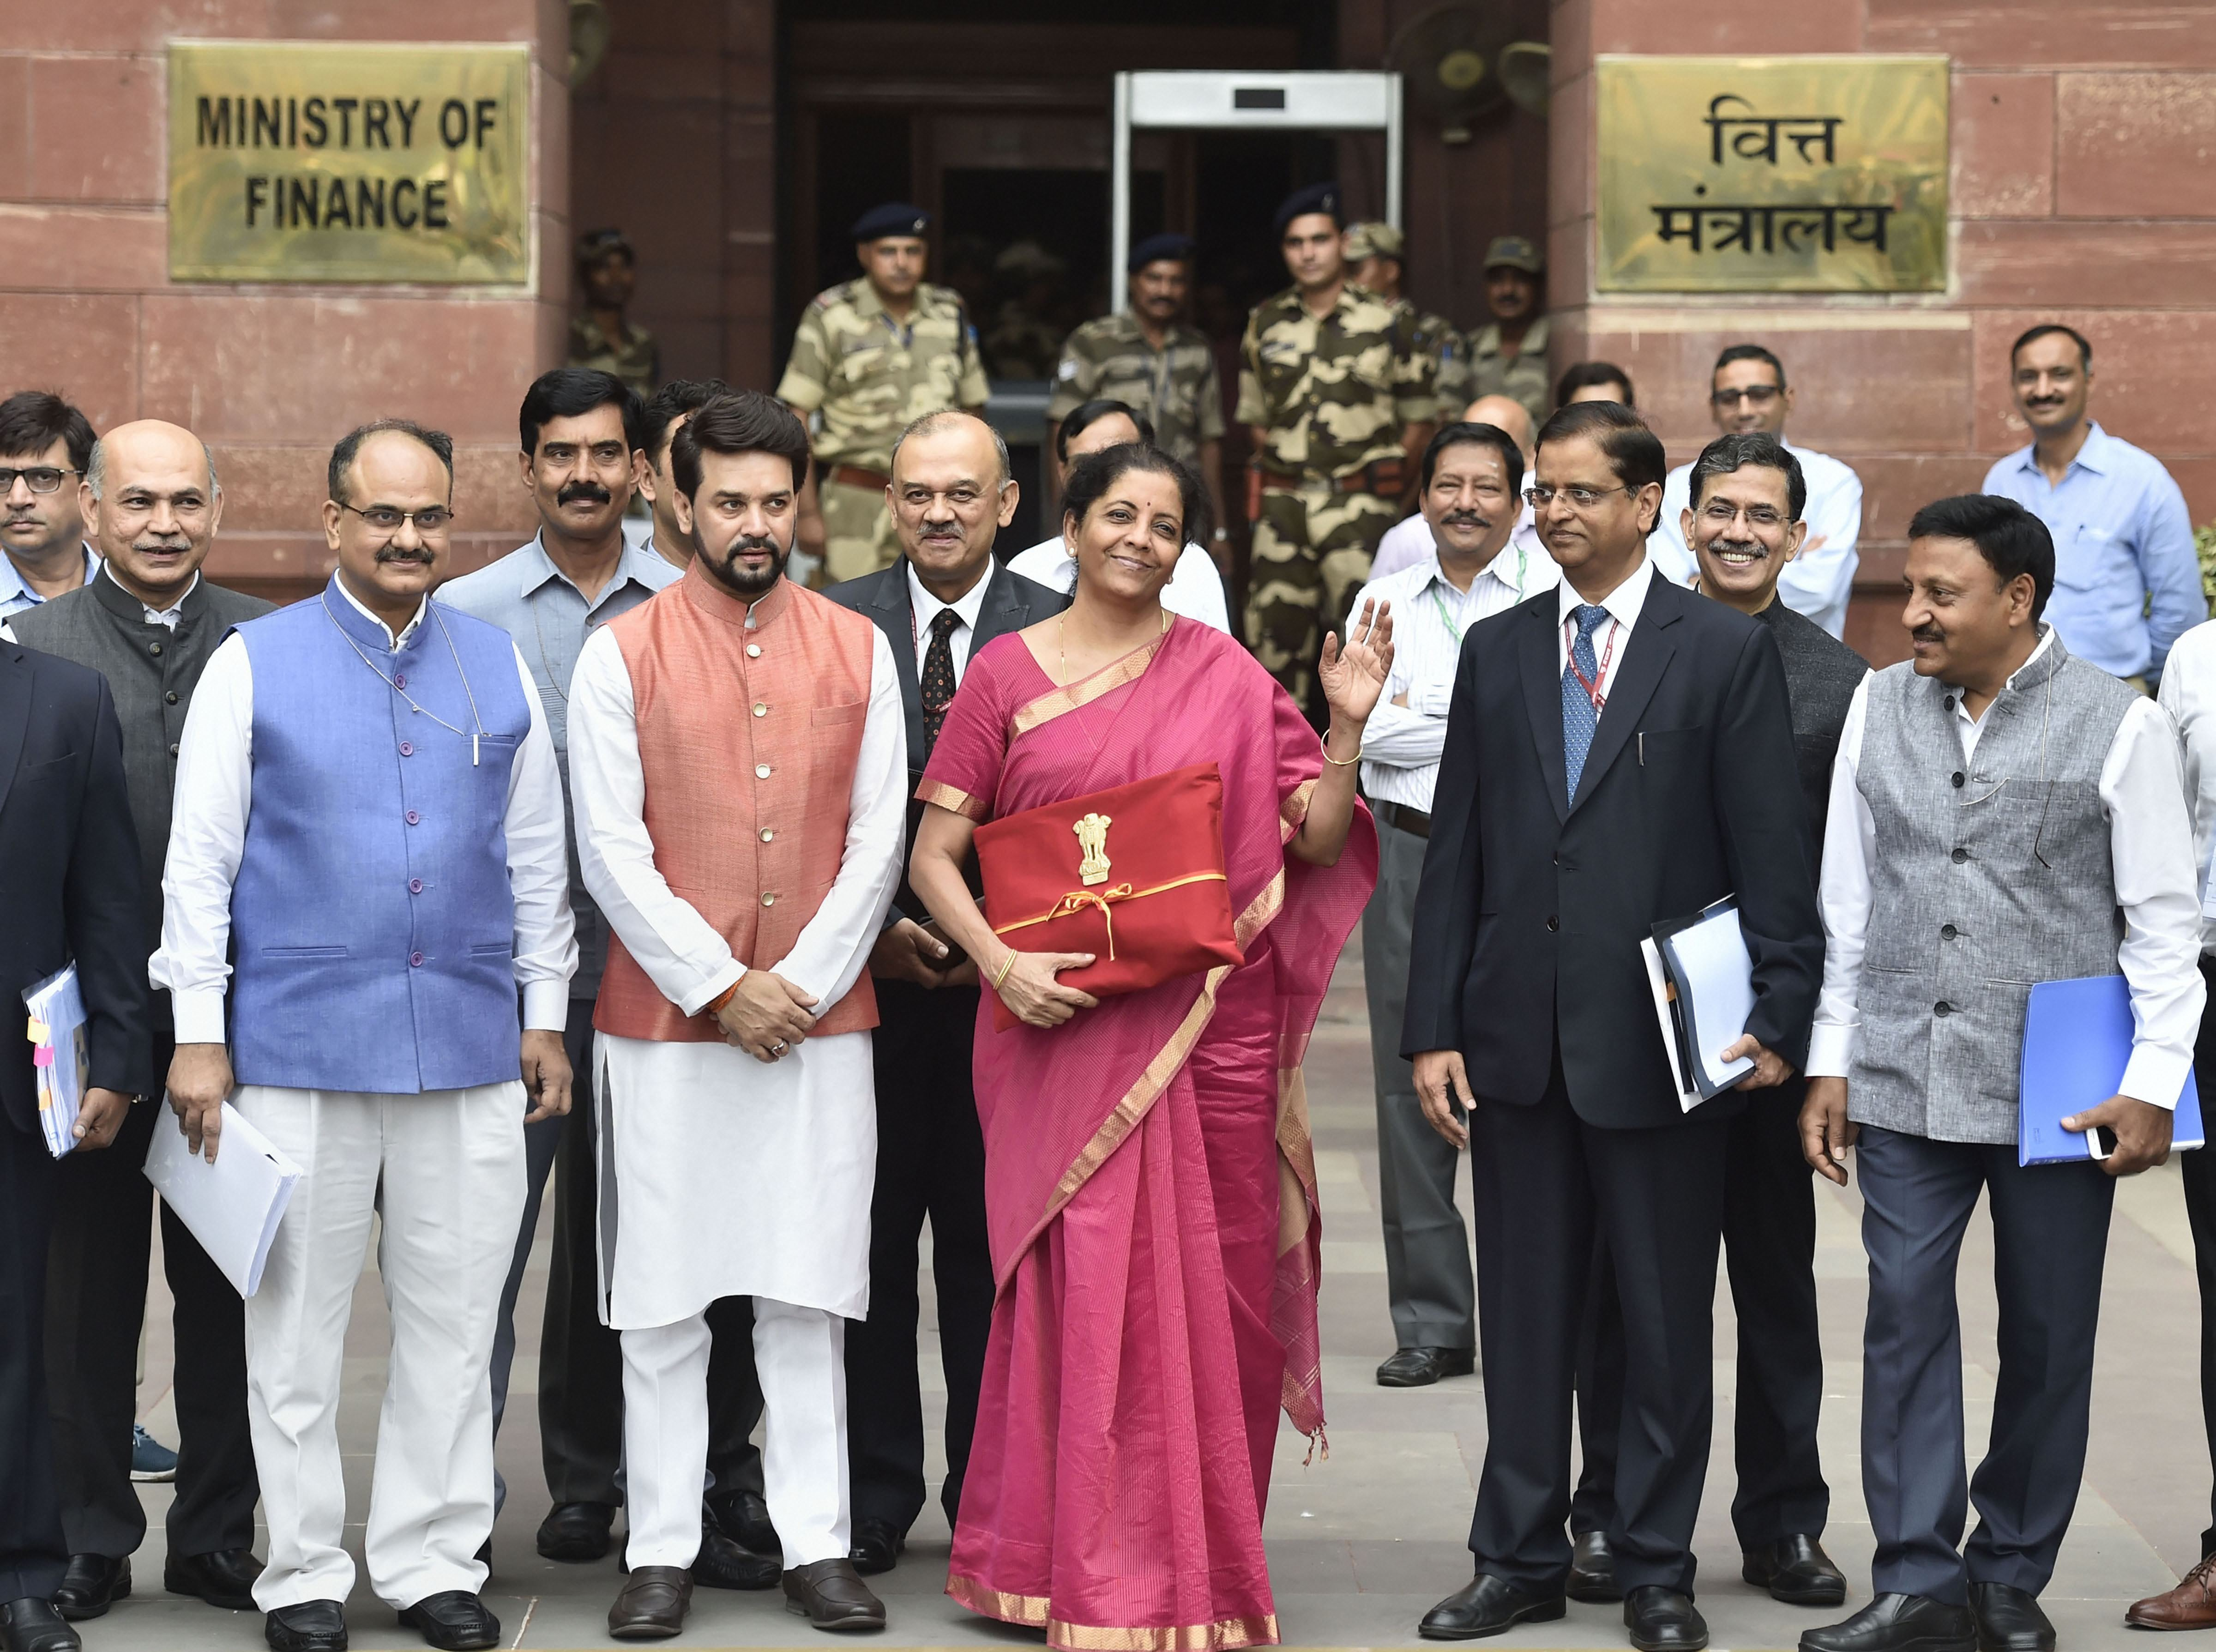 Union Budget: High on vision, low on specifics